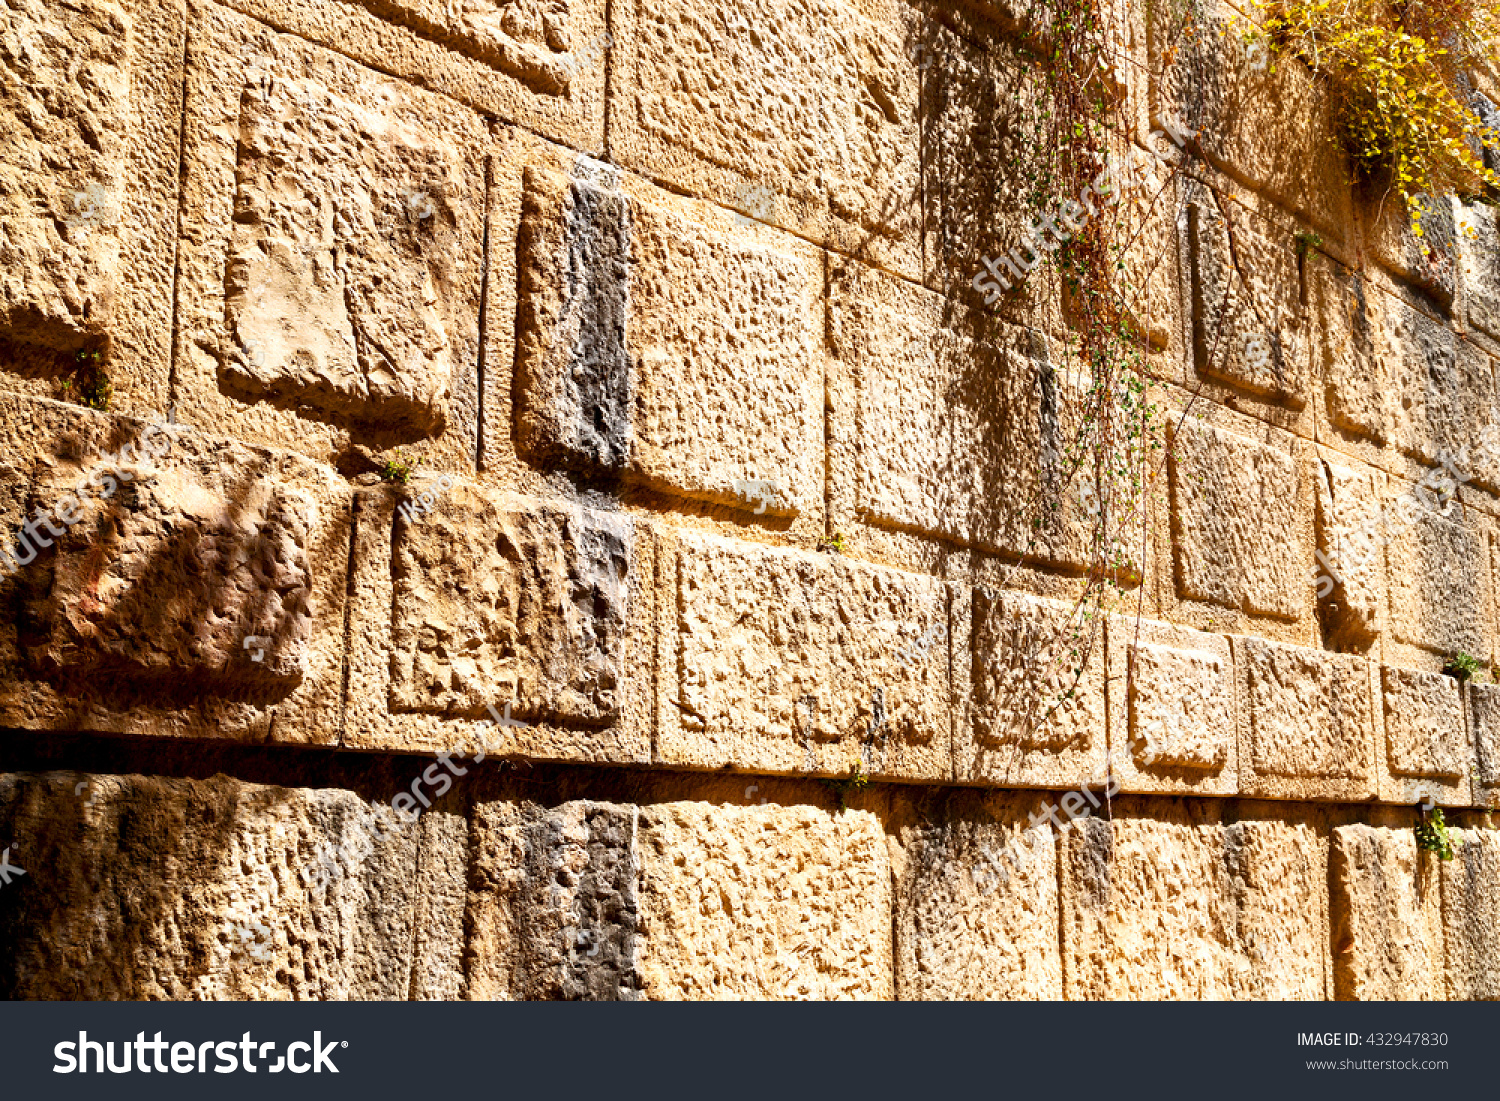 Step Brick Greece Old Wall Texture Stock Photo & Image (Royalty-Free ...